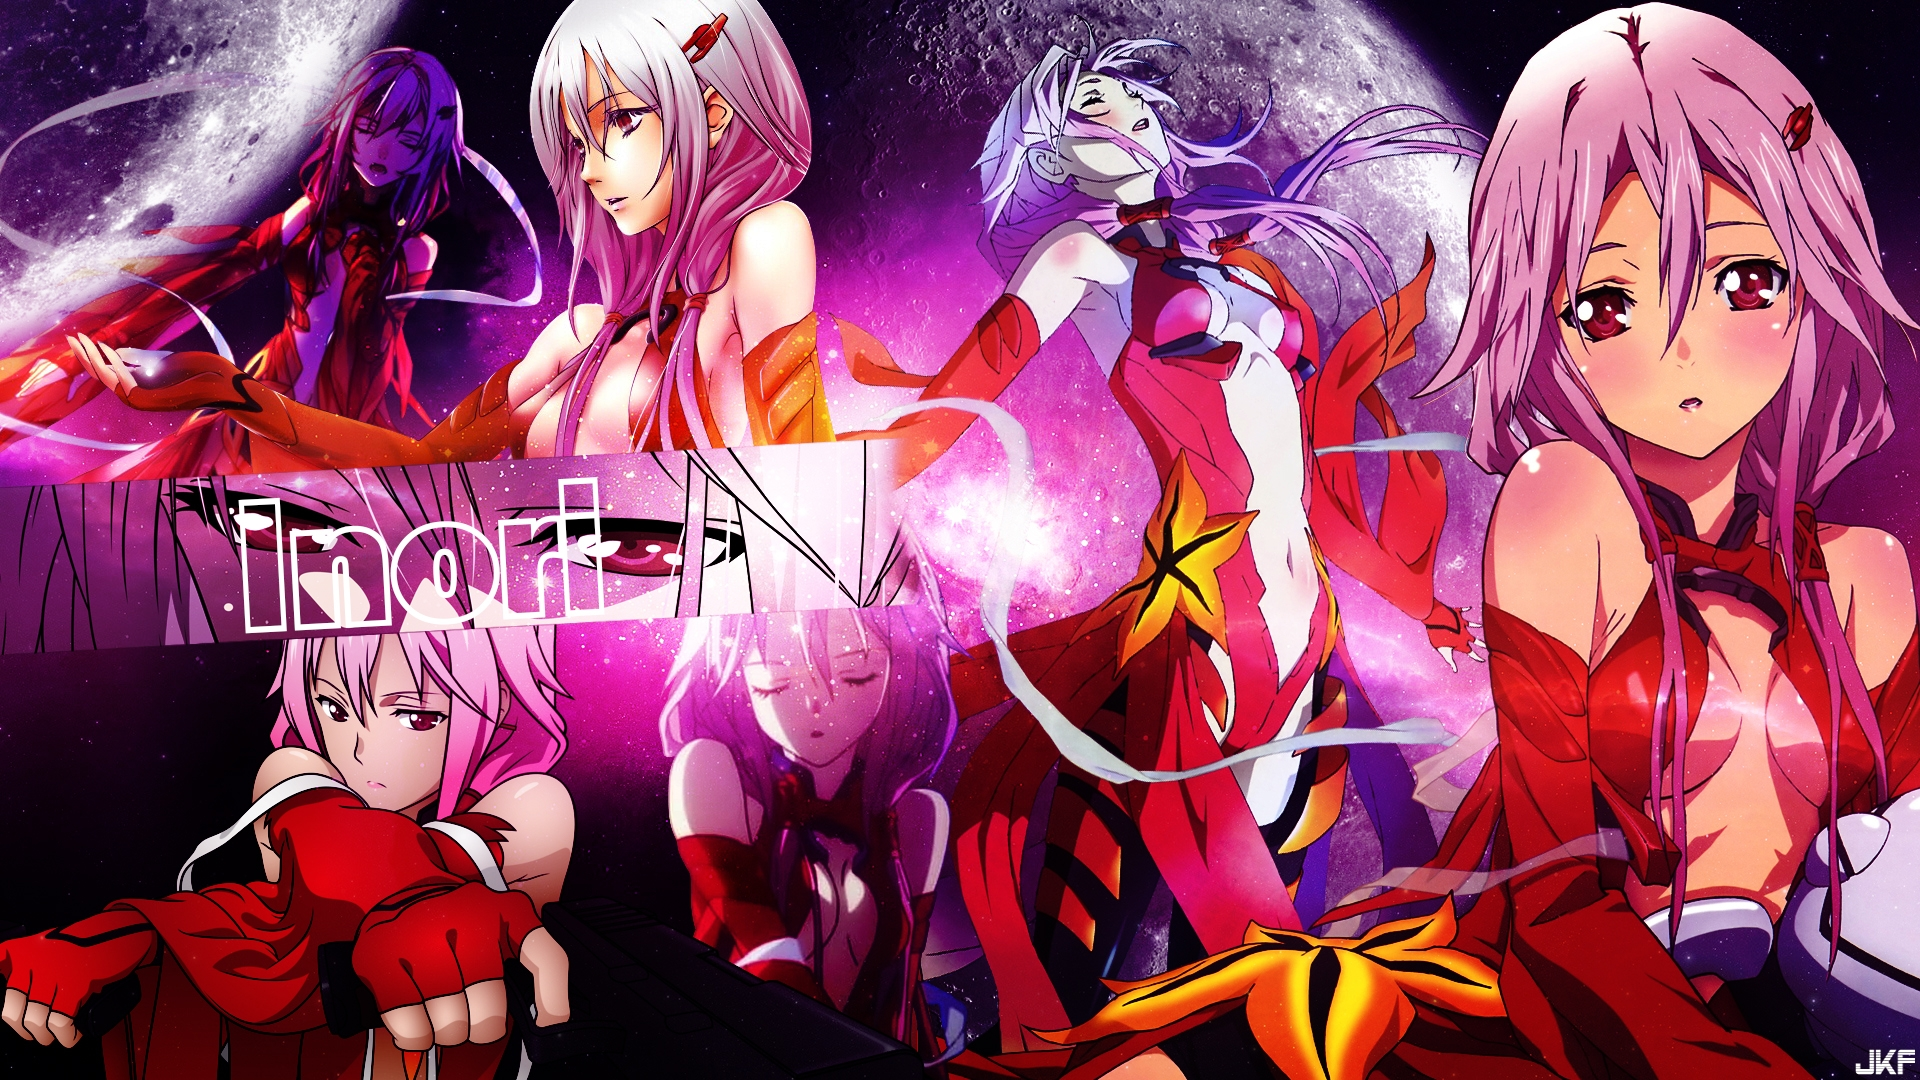 inori_wallpaper_by_dinocojv-d8eiiz9.jpg